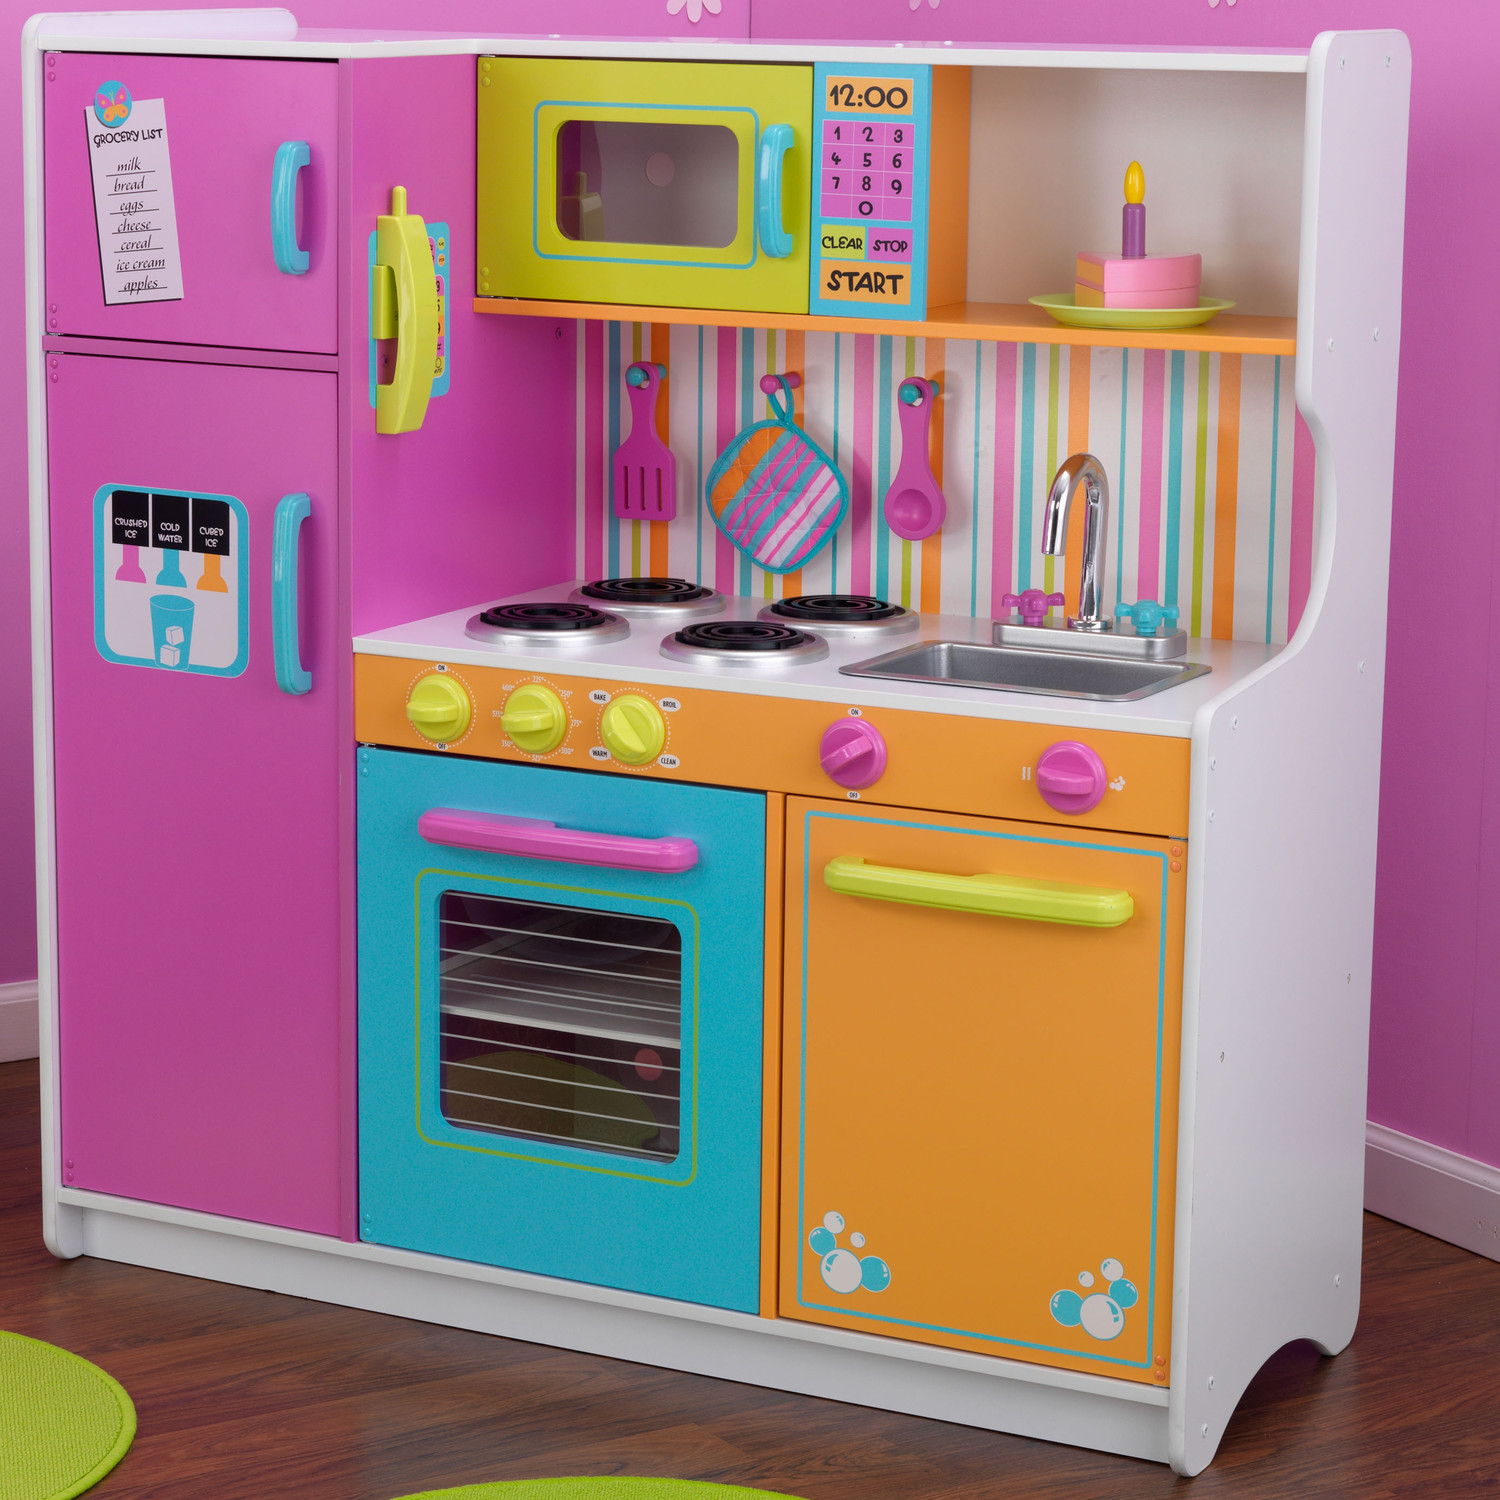 Kidkraft Kitchen Set Toys R Us